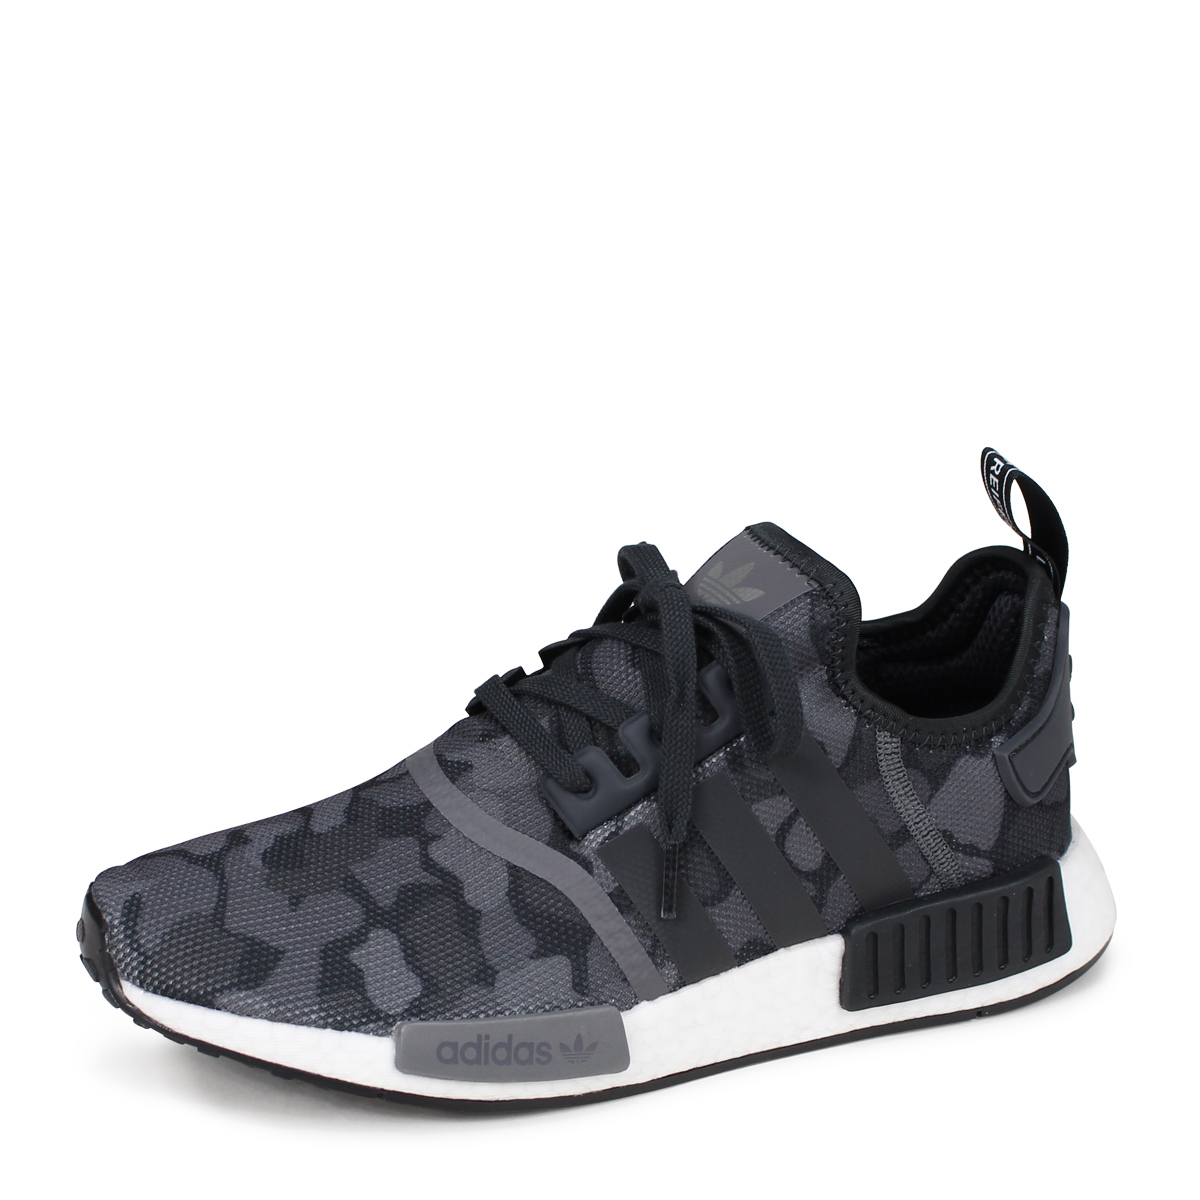 04939c56115ec adidas Originals NMD R1 Adidas originals sneakers N M D nomad men D96616  black  load planned Shinnyu load in reservation product 8 14 containing    188